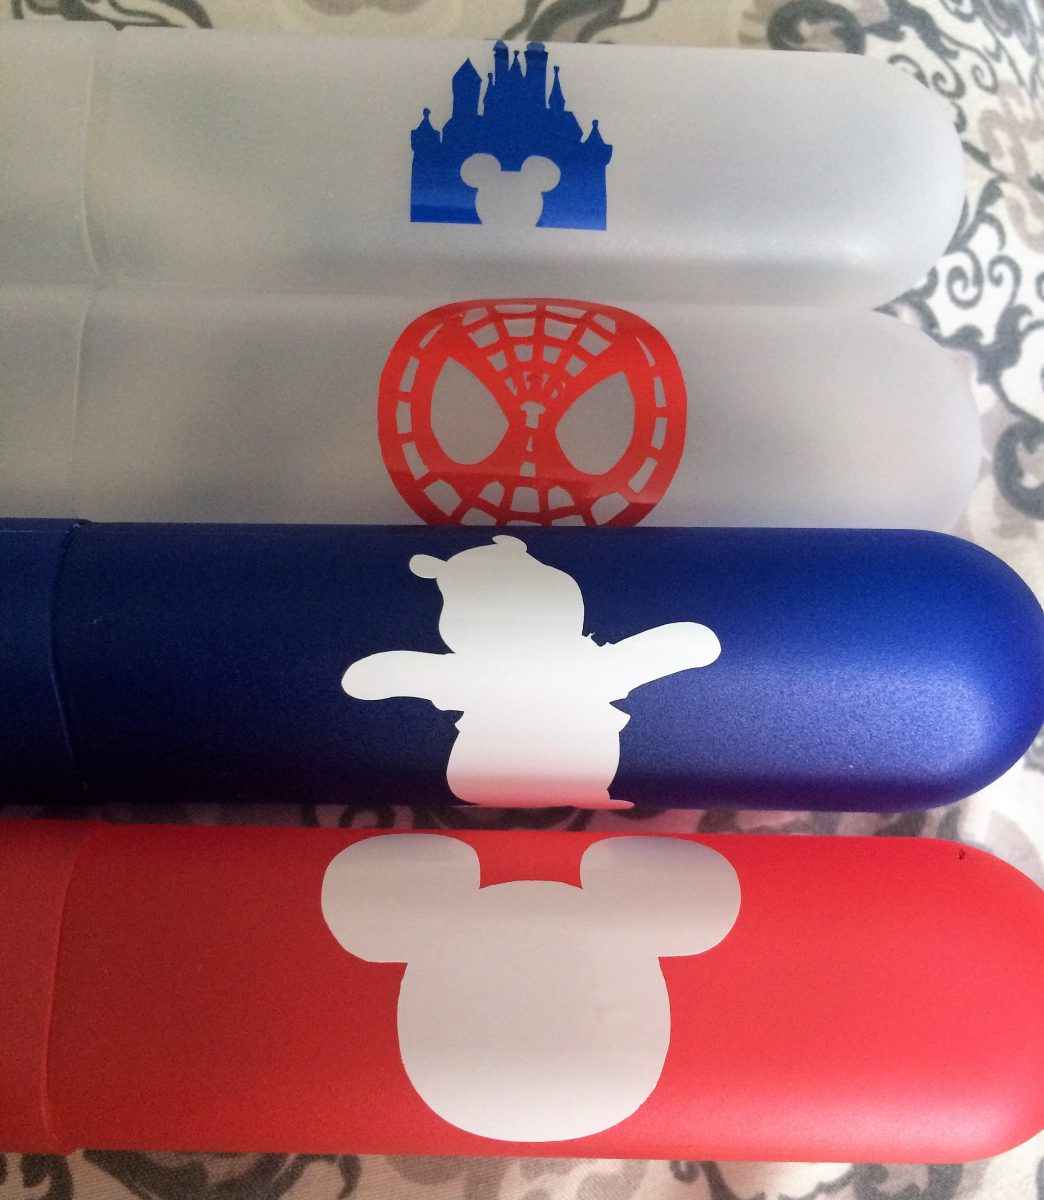 Vinyl Disney Characters on Travel Toothbrush Holders